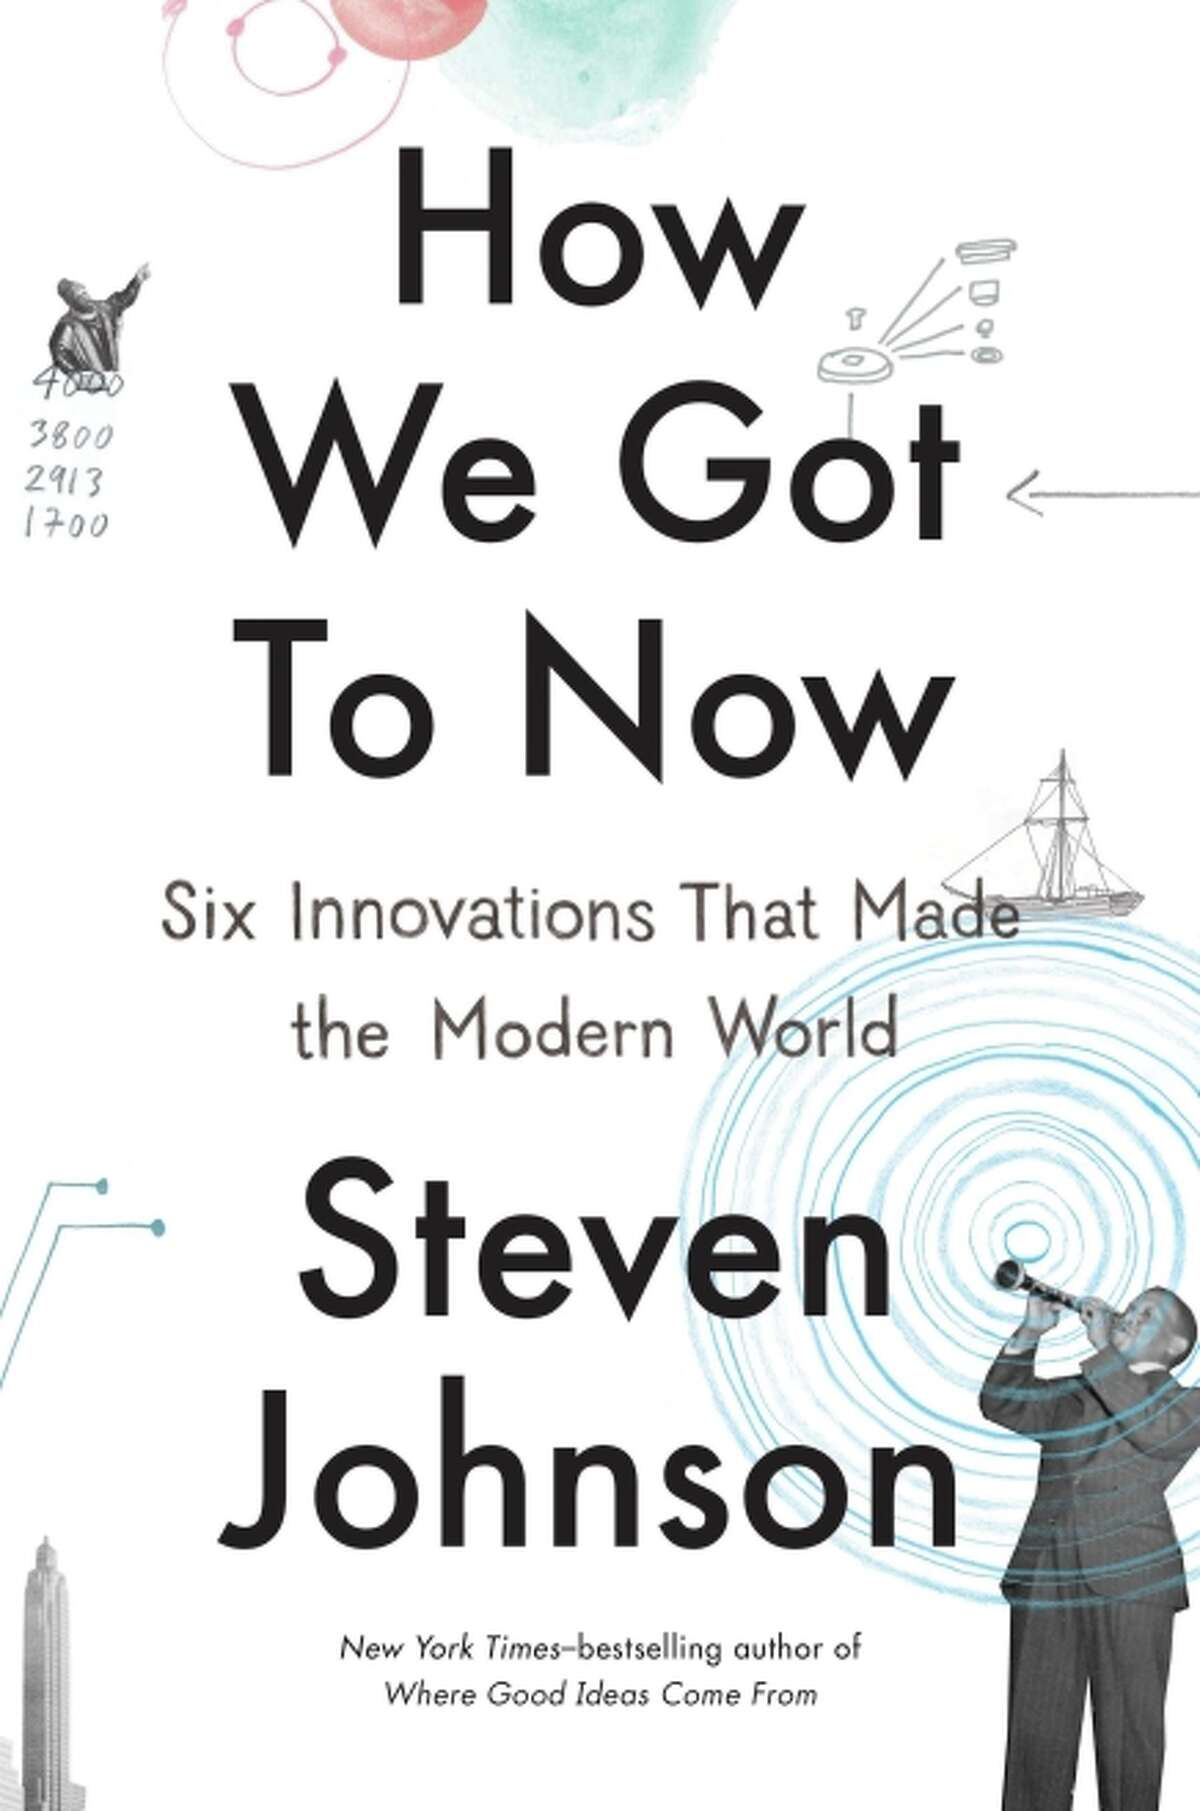 Steven Johnson's new book, also a television series to air on PBS, is called